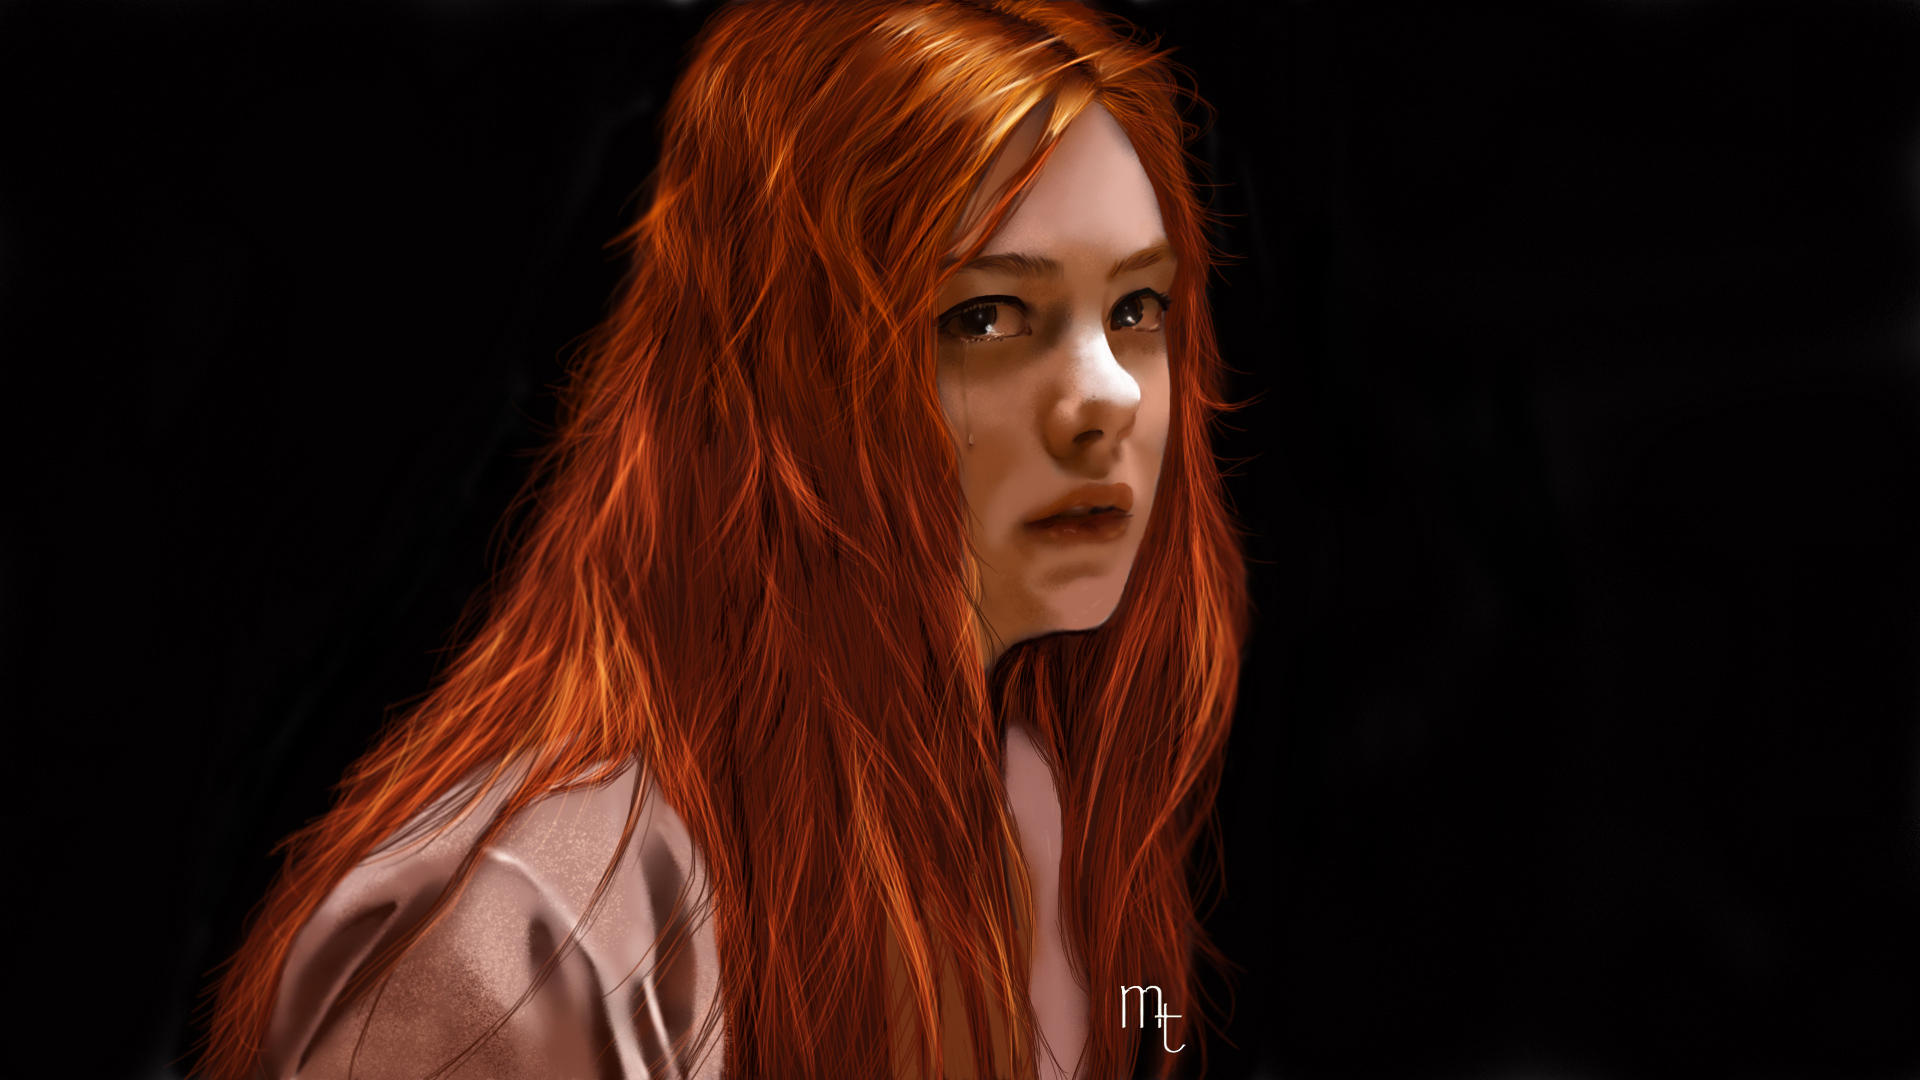 Elle Fanning portrait by turkill